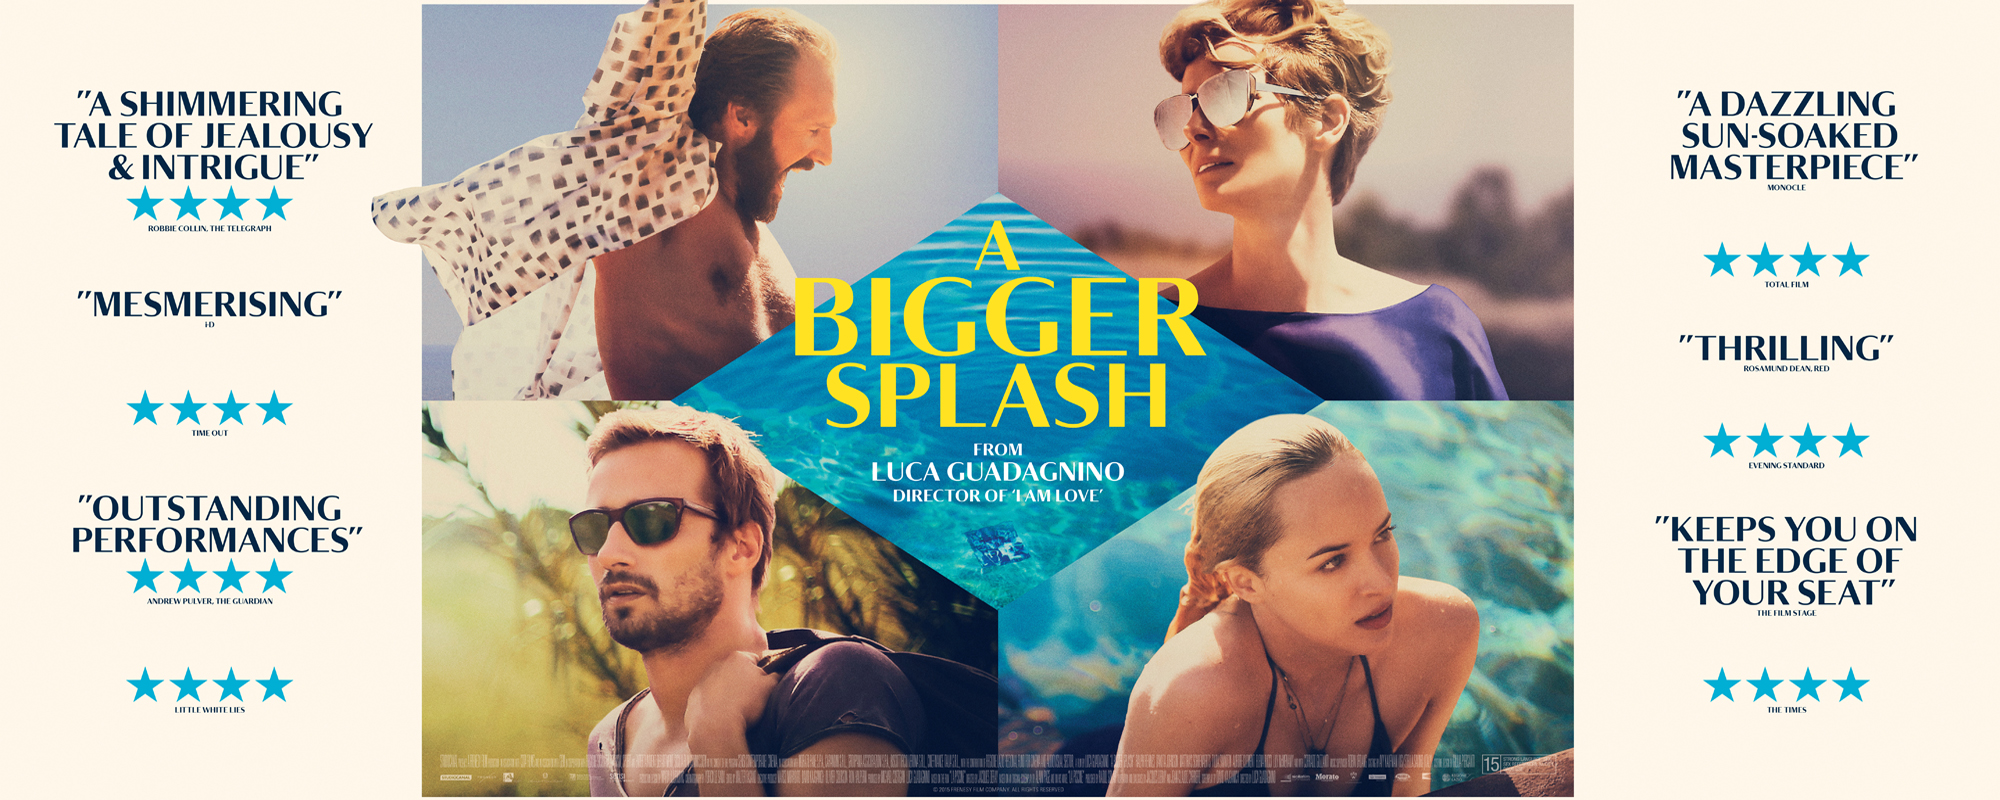 A bigger splash benutzer kritik moviepedia wiki fandom for Film a bigger splash